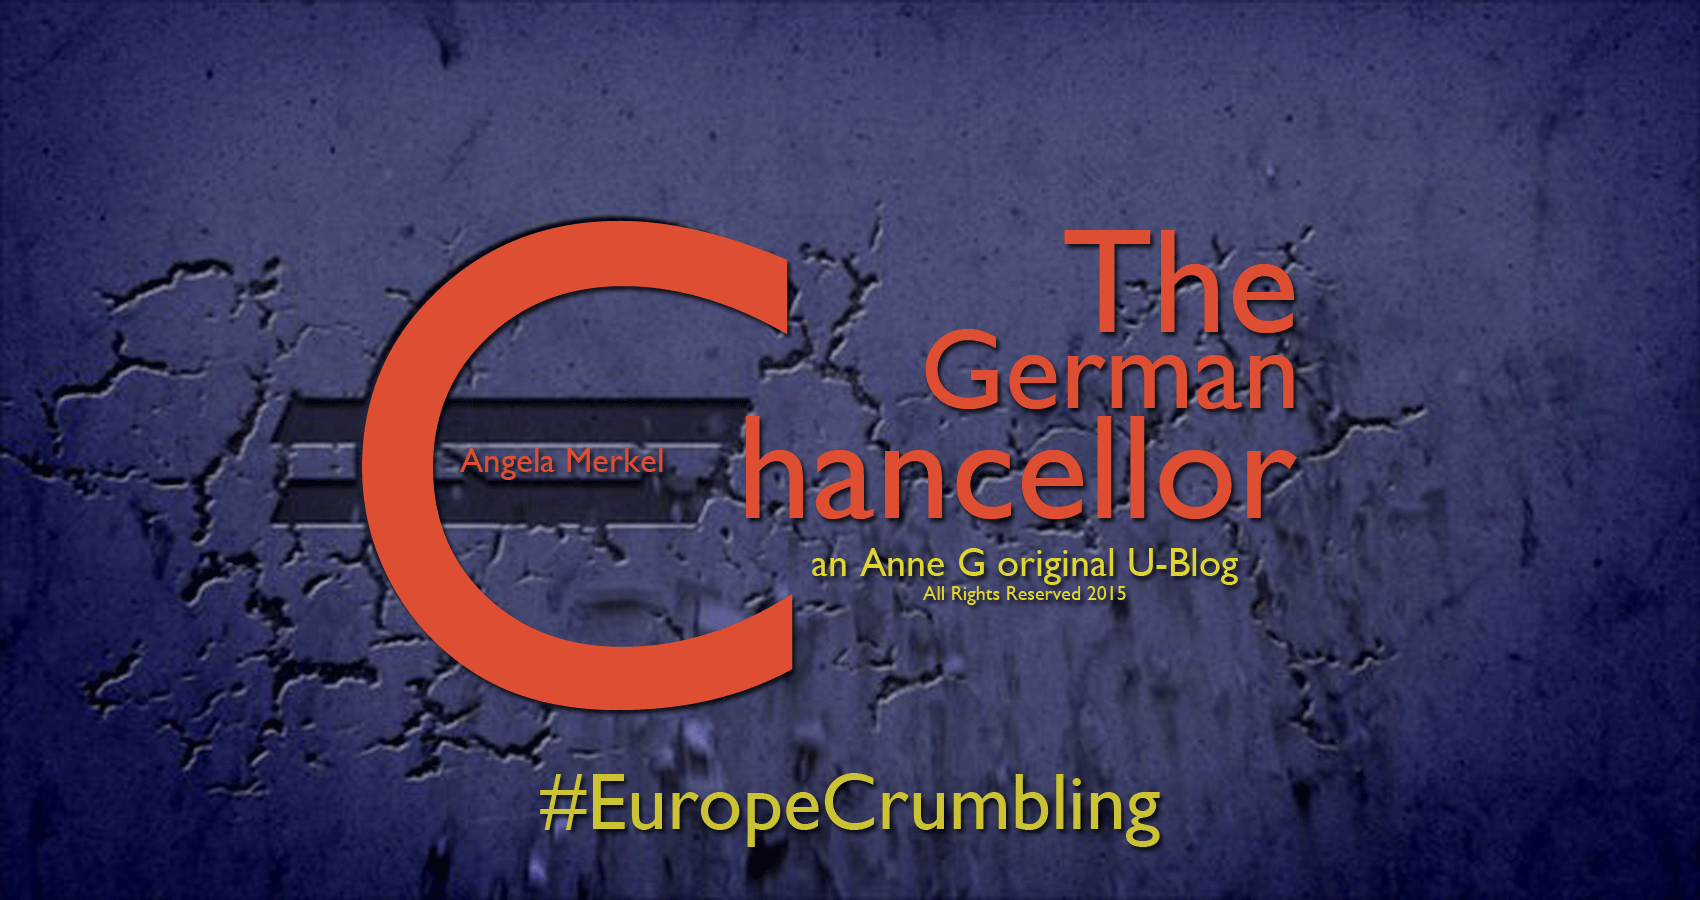 spillwords.com The german Chancellor by Anne G